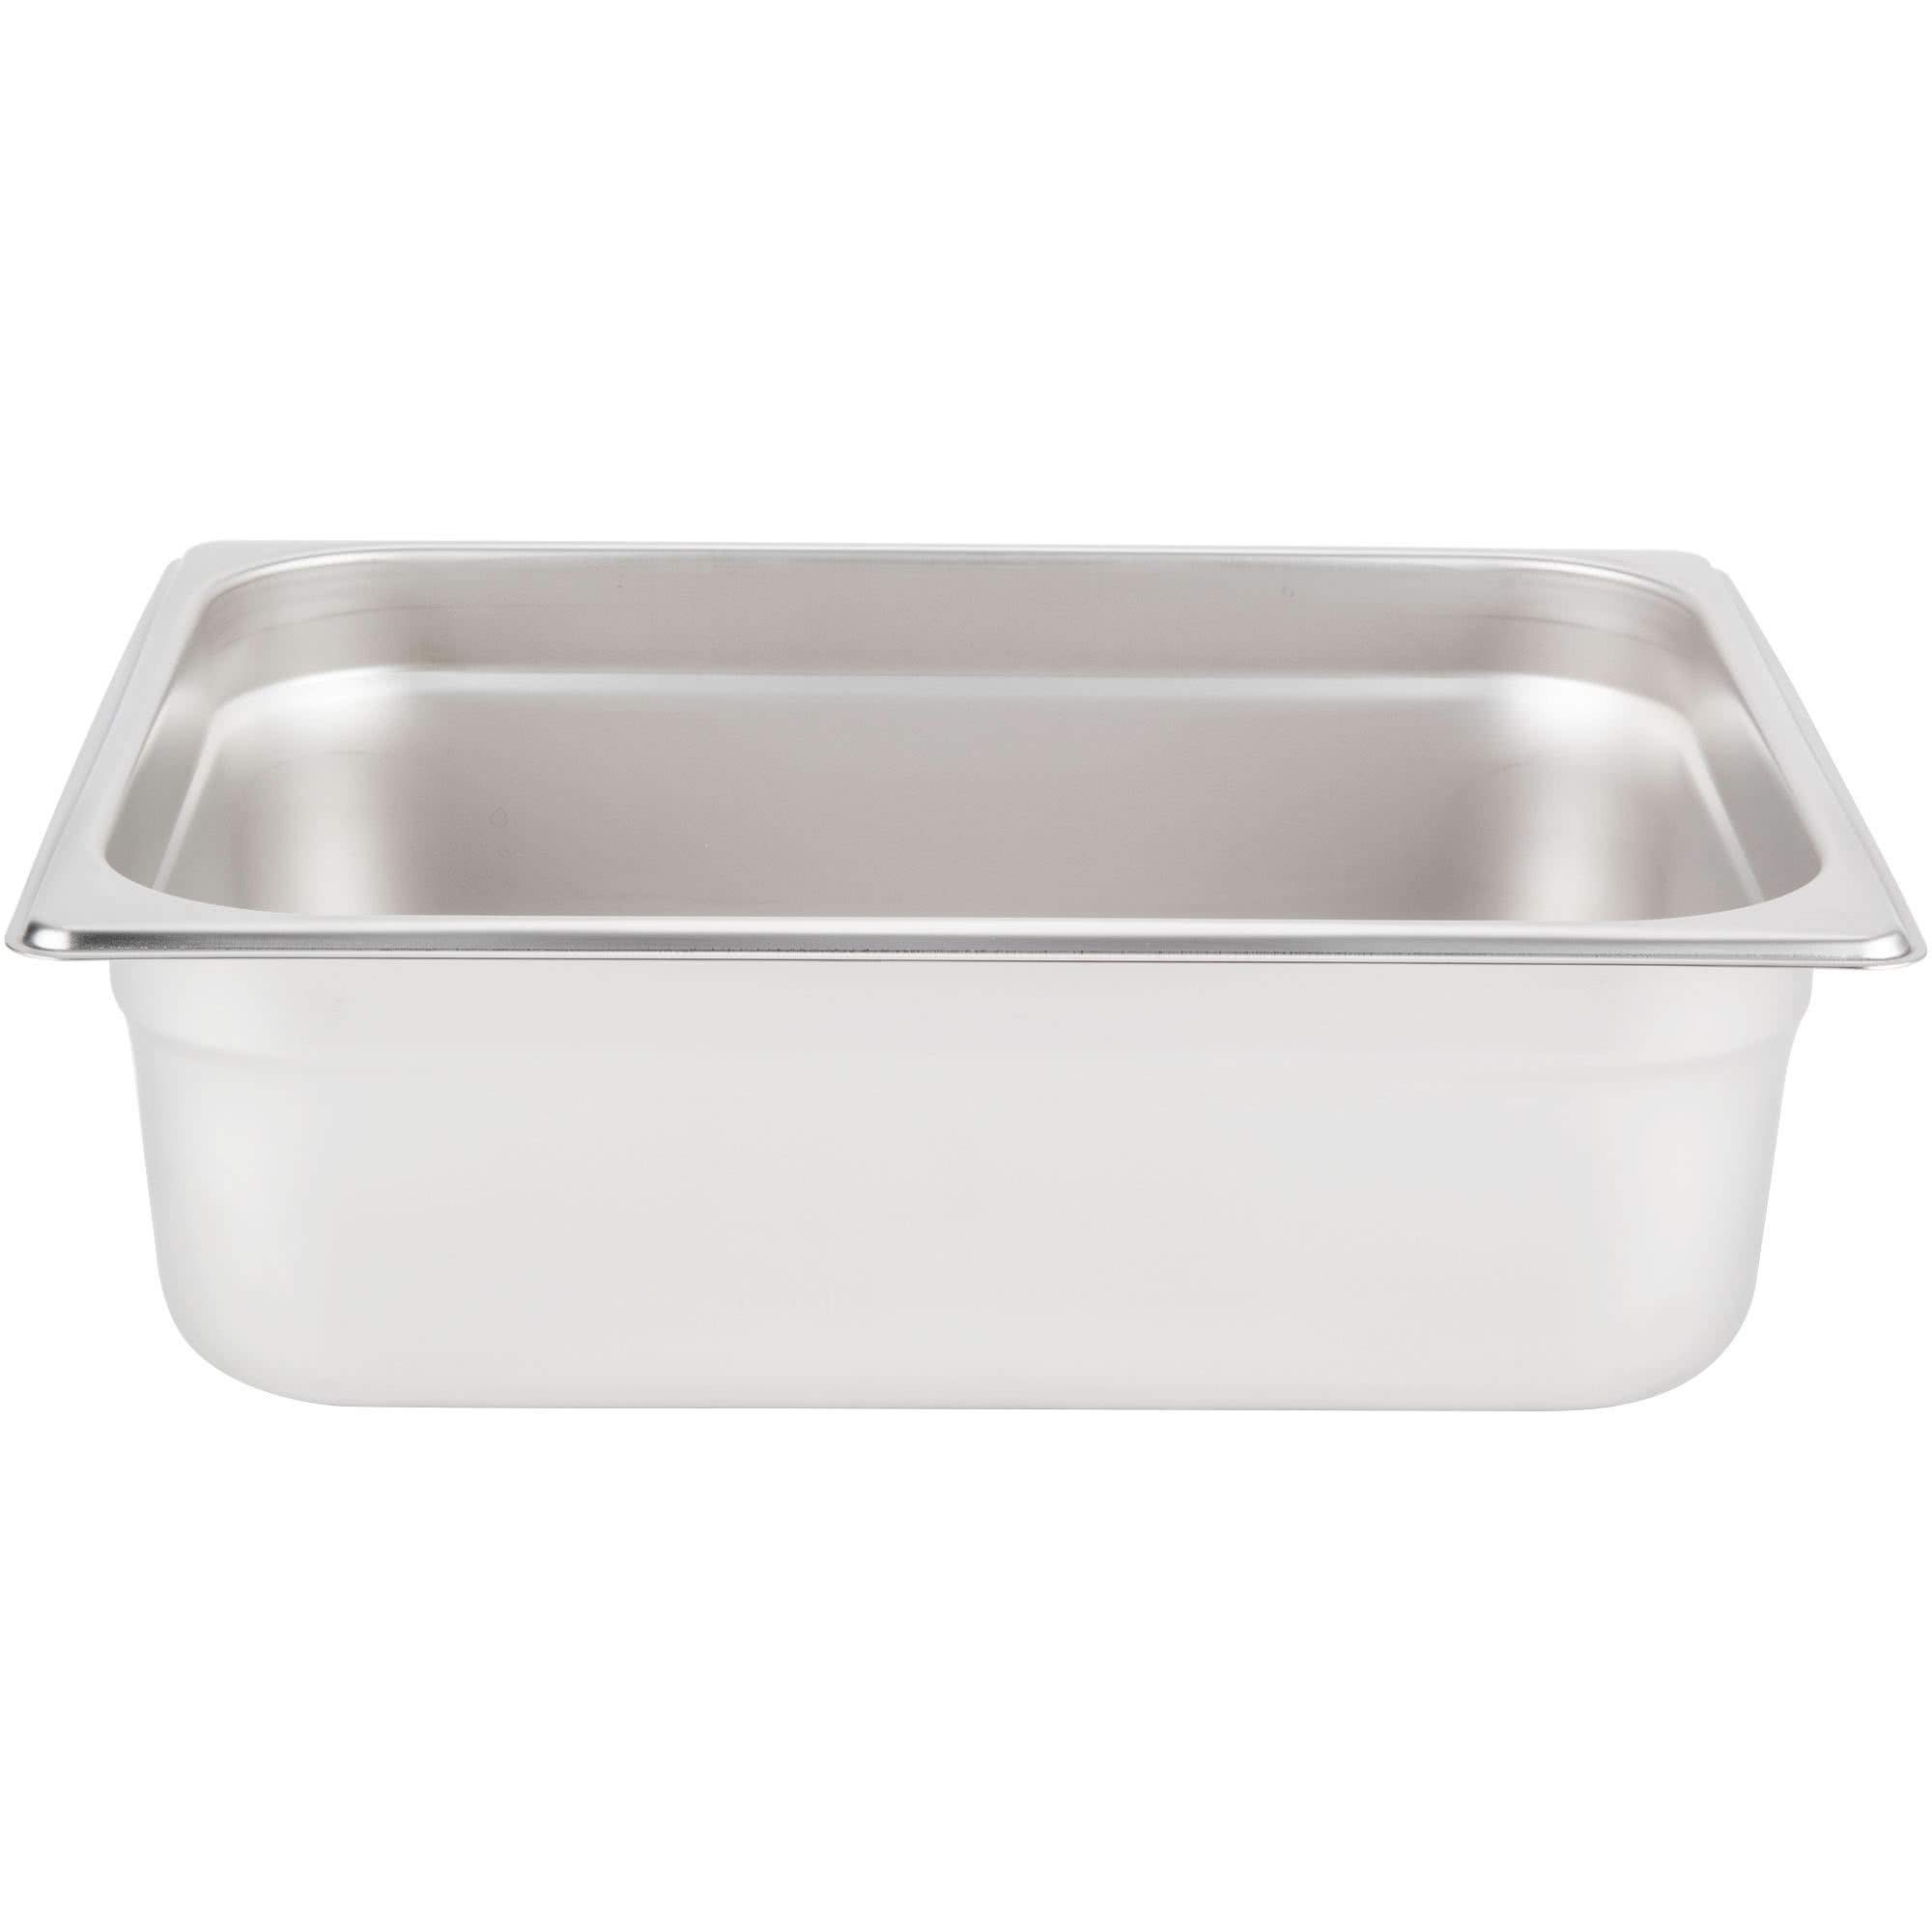 TableTop King 1/2 Size Standard Weight Anti-Jam Stainless Steel Steam Table/Hotel Pan - 4'' Deep by TableTop King